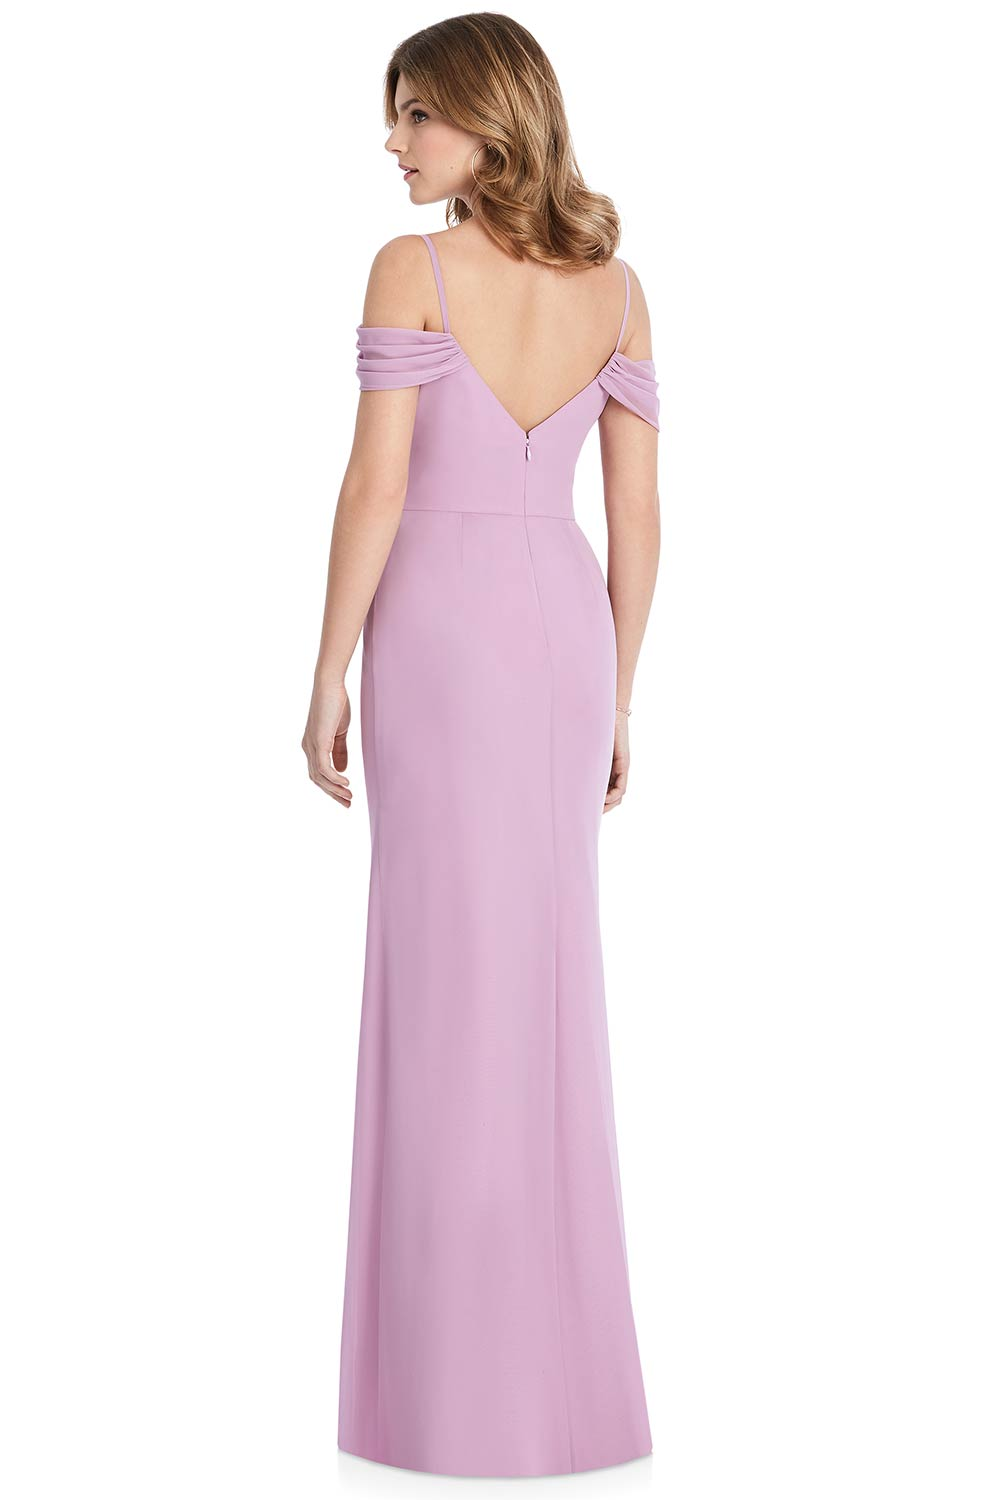 bridesmaid-dresses-dessy-26540